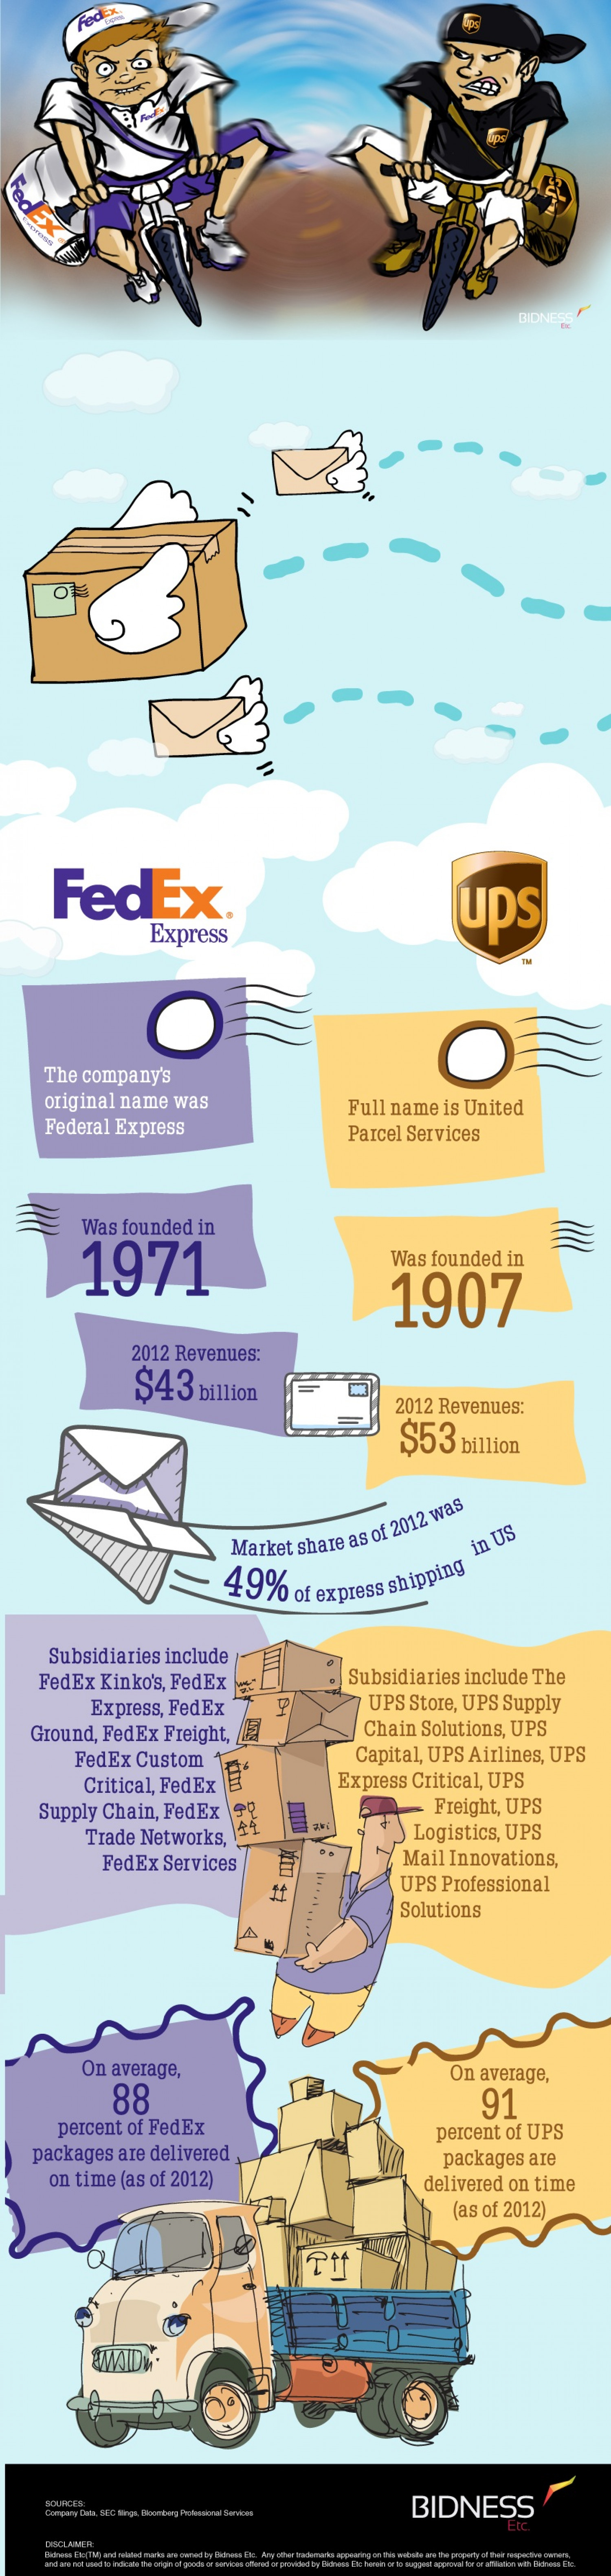 FedEx vs. UPS – Delivering Expectations Infographic